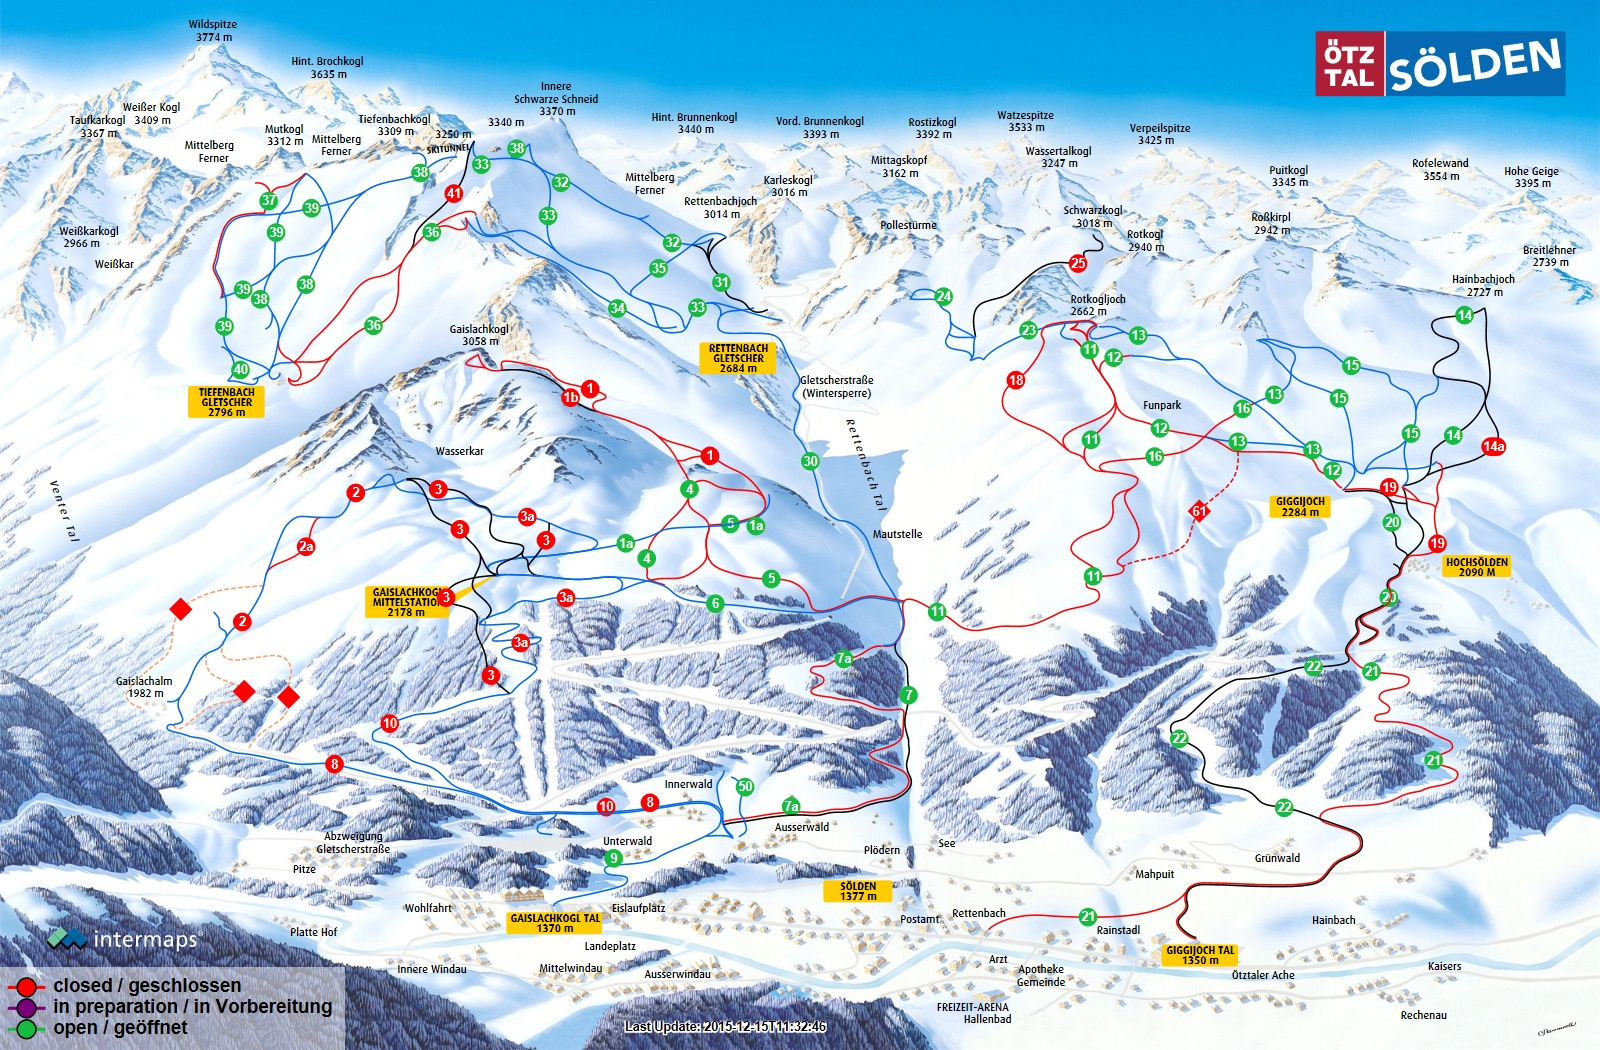 Skimap Touch Powered By Intermaps